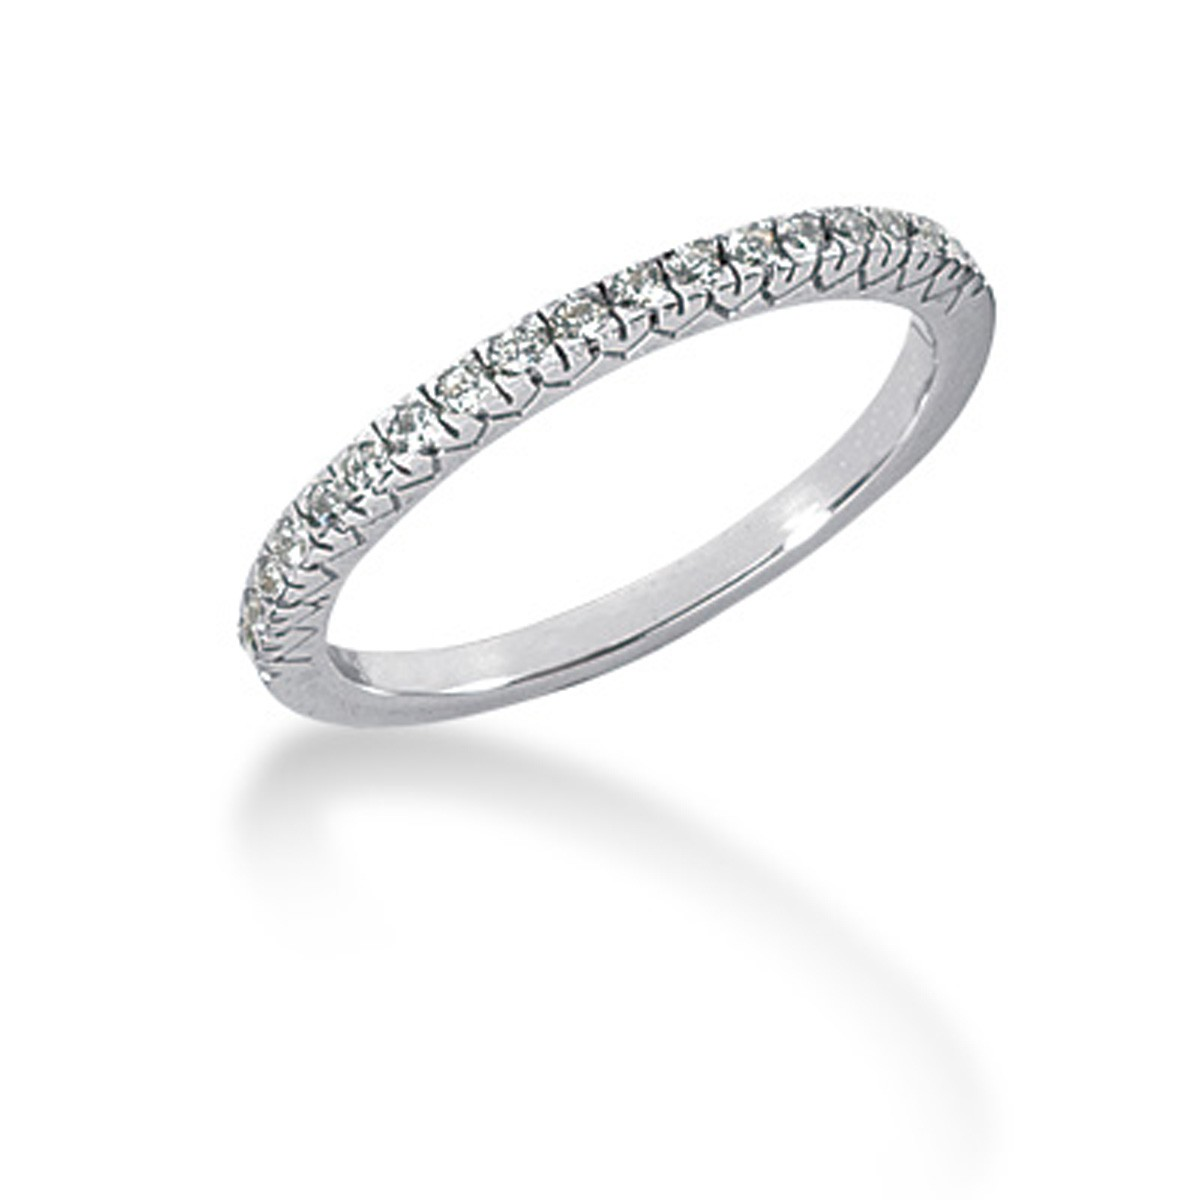 Pavé Bands: Fishtail V Pave Diamond Wedding Ring Band In 14K White